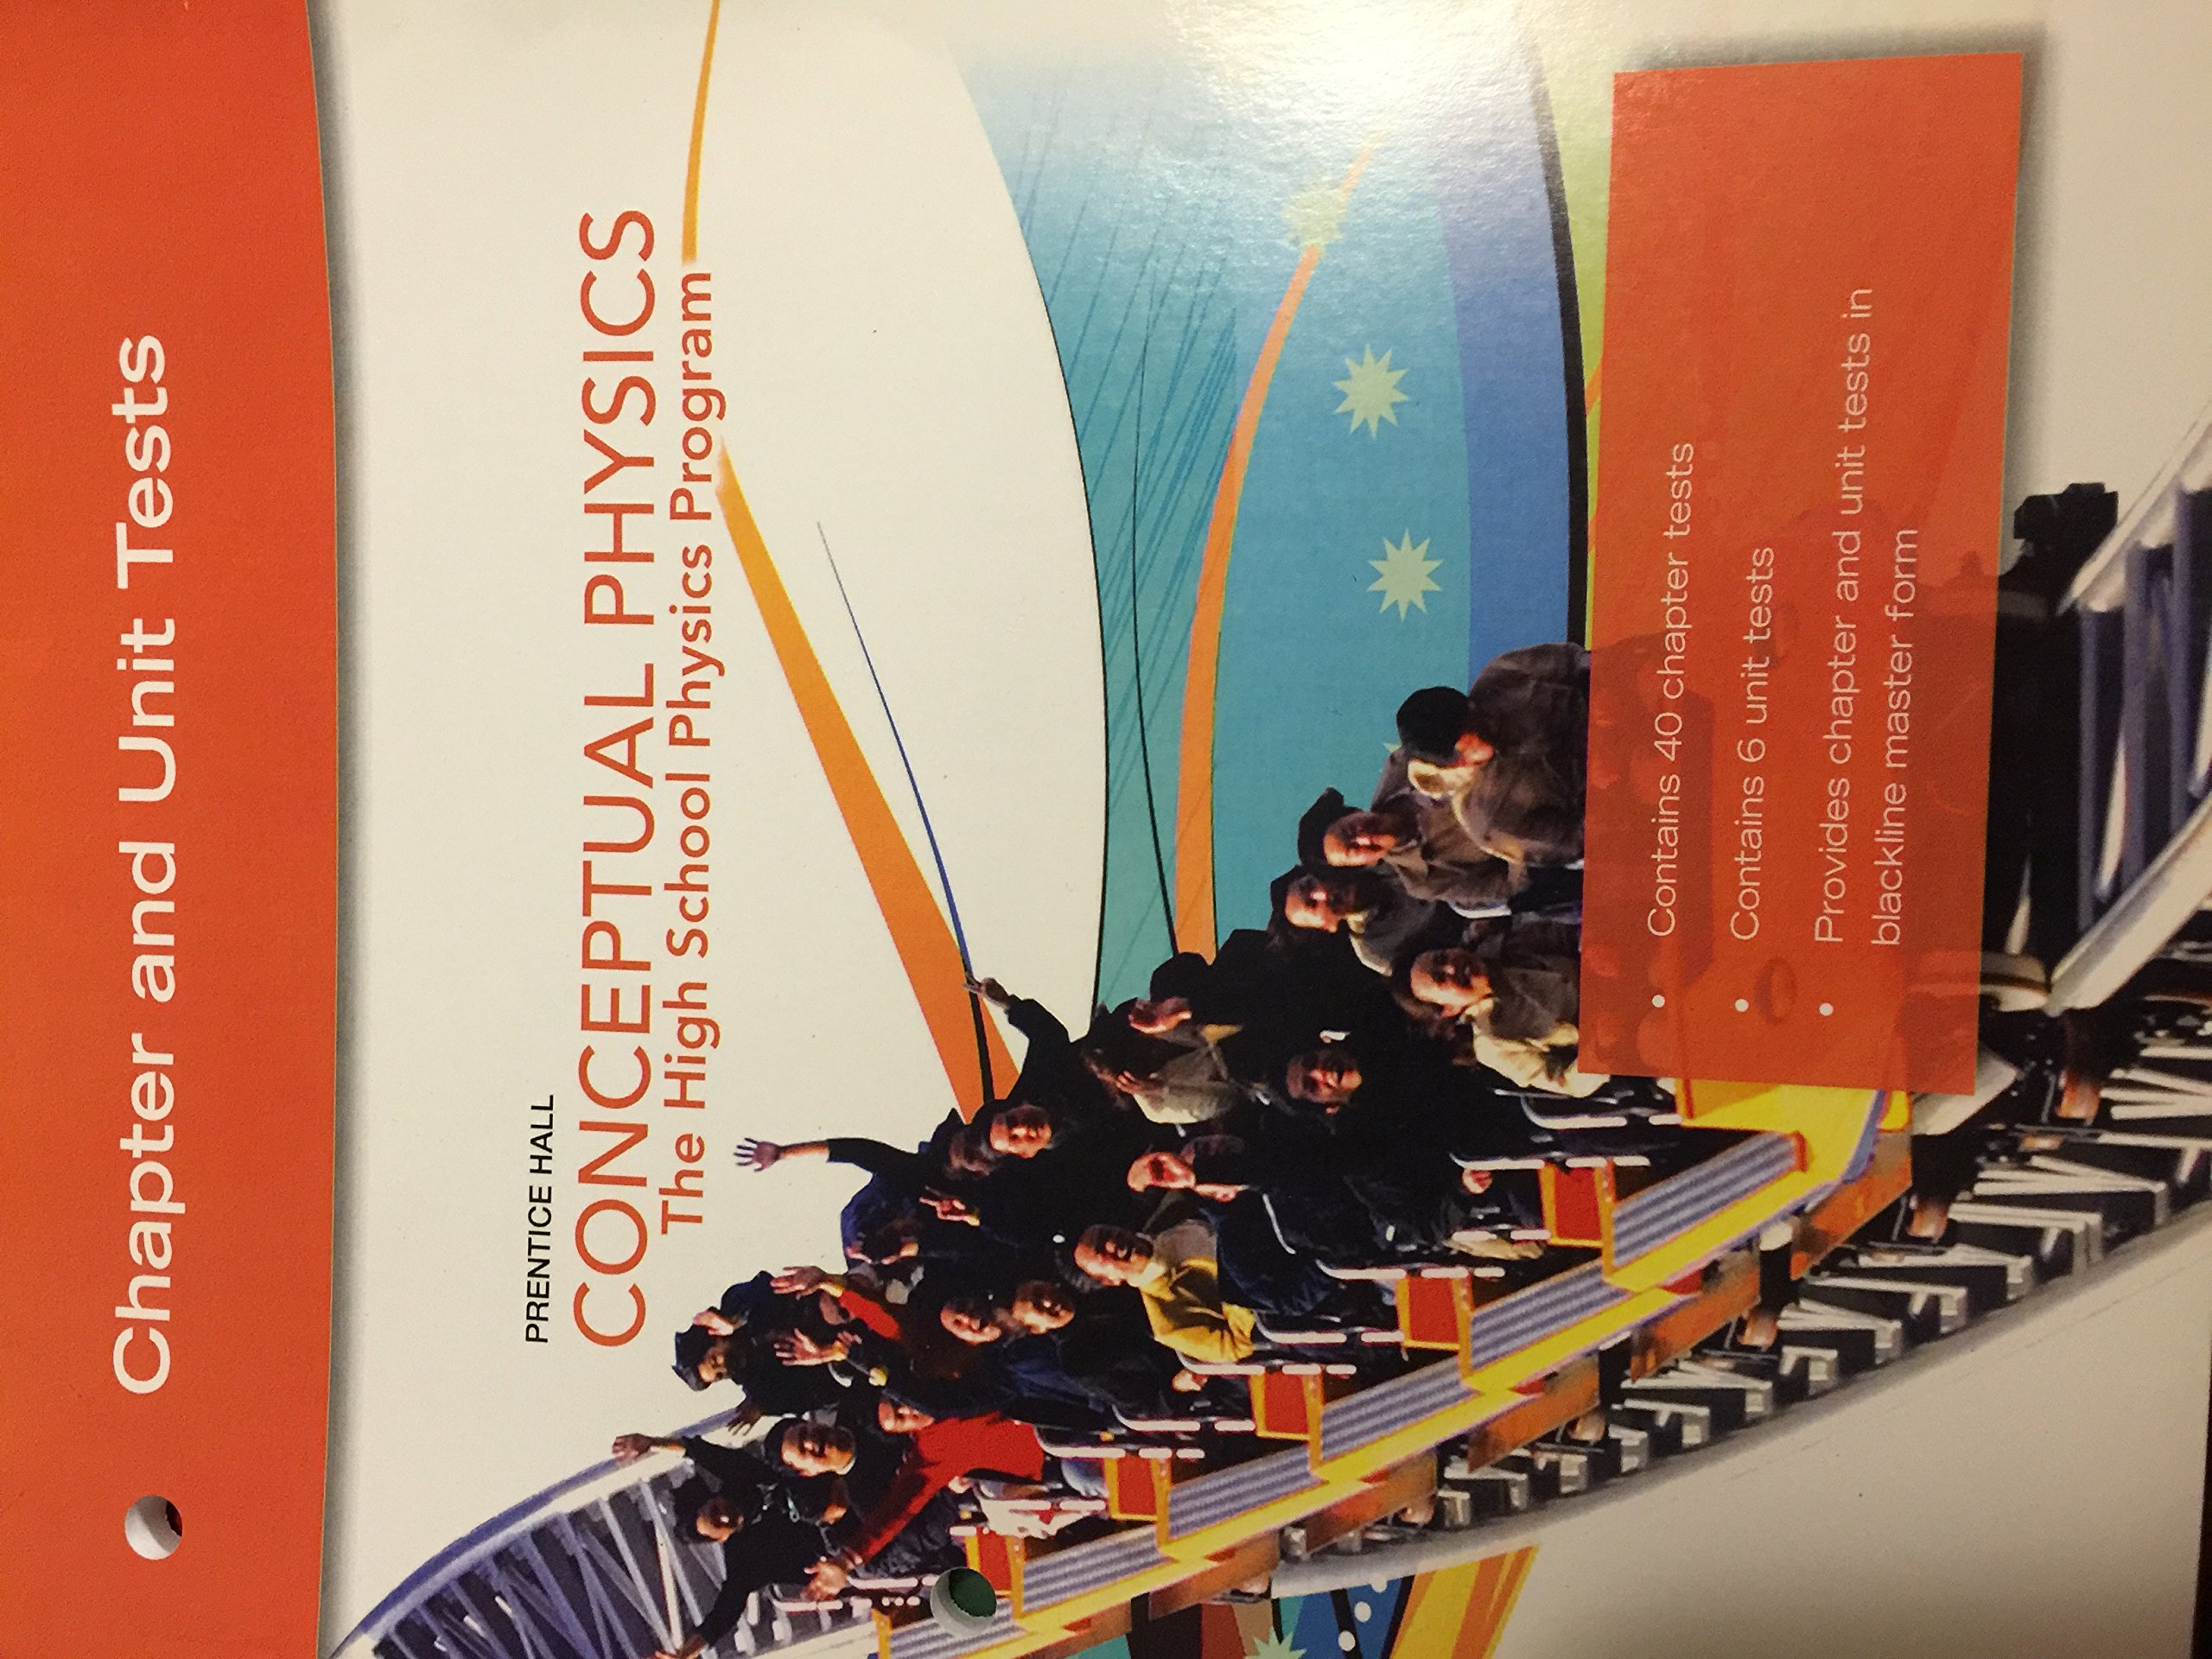 Prentice Hall Conceptual Physics The The High School Physics Program  Chapter and Unit Tests: Prentice Hall: 9780133647563: Amazon.com: Books